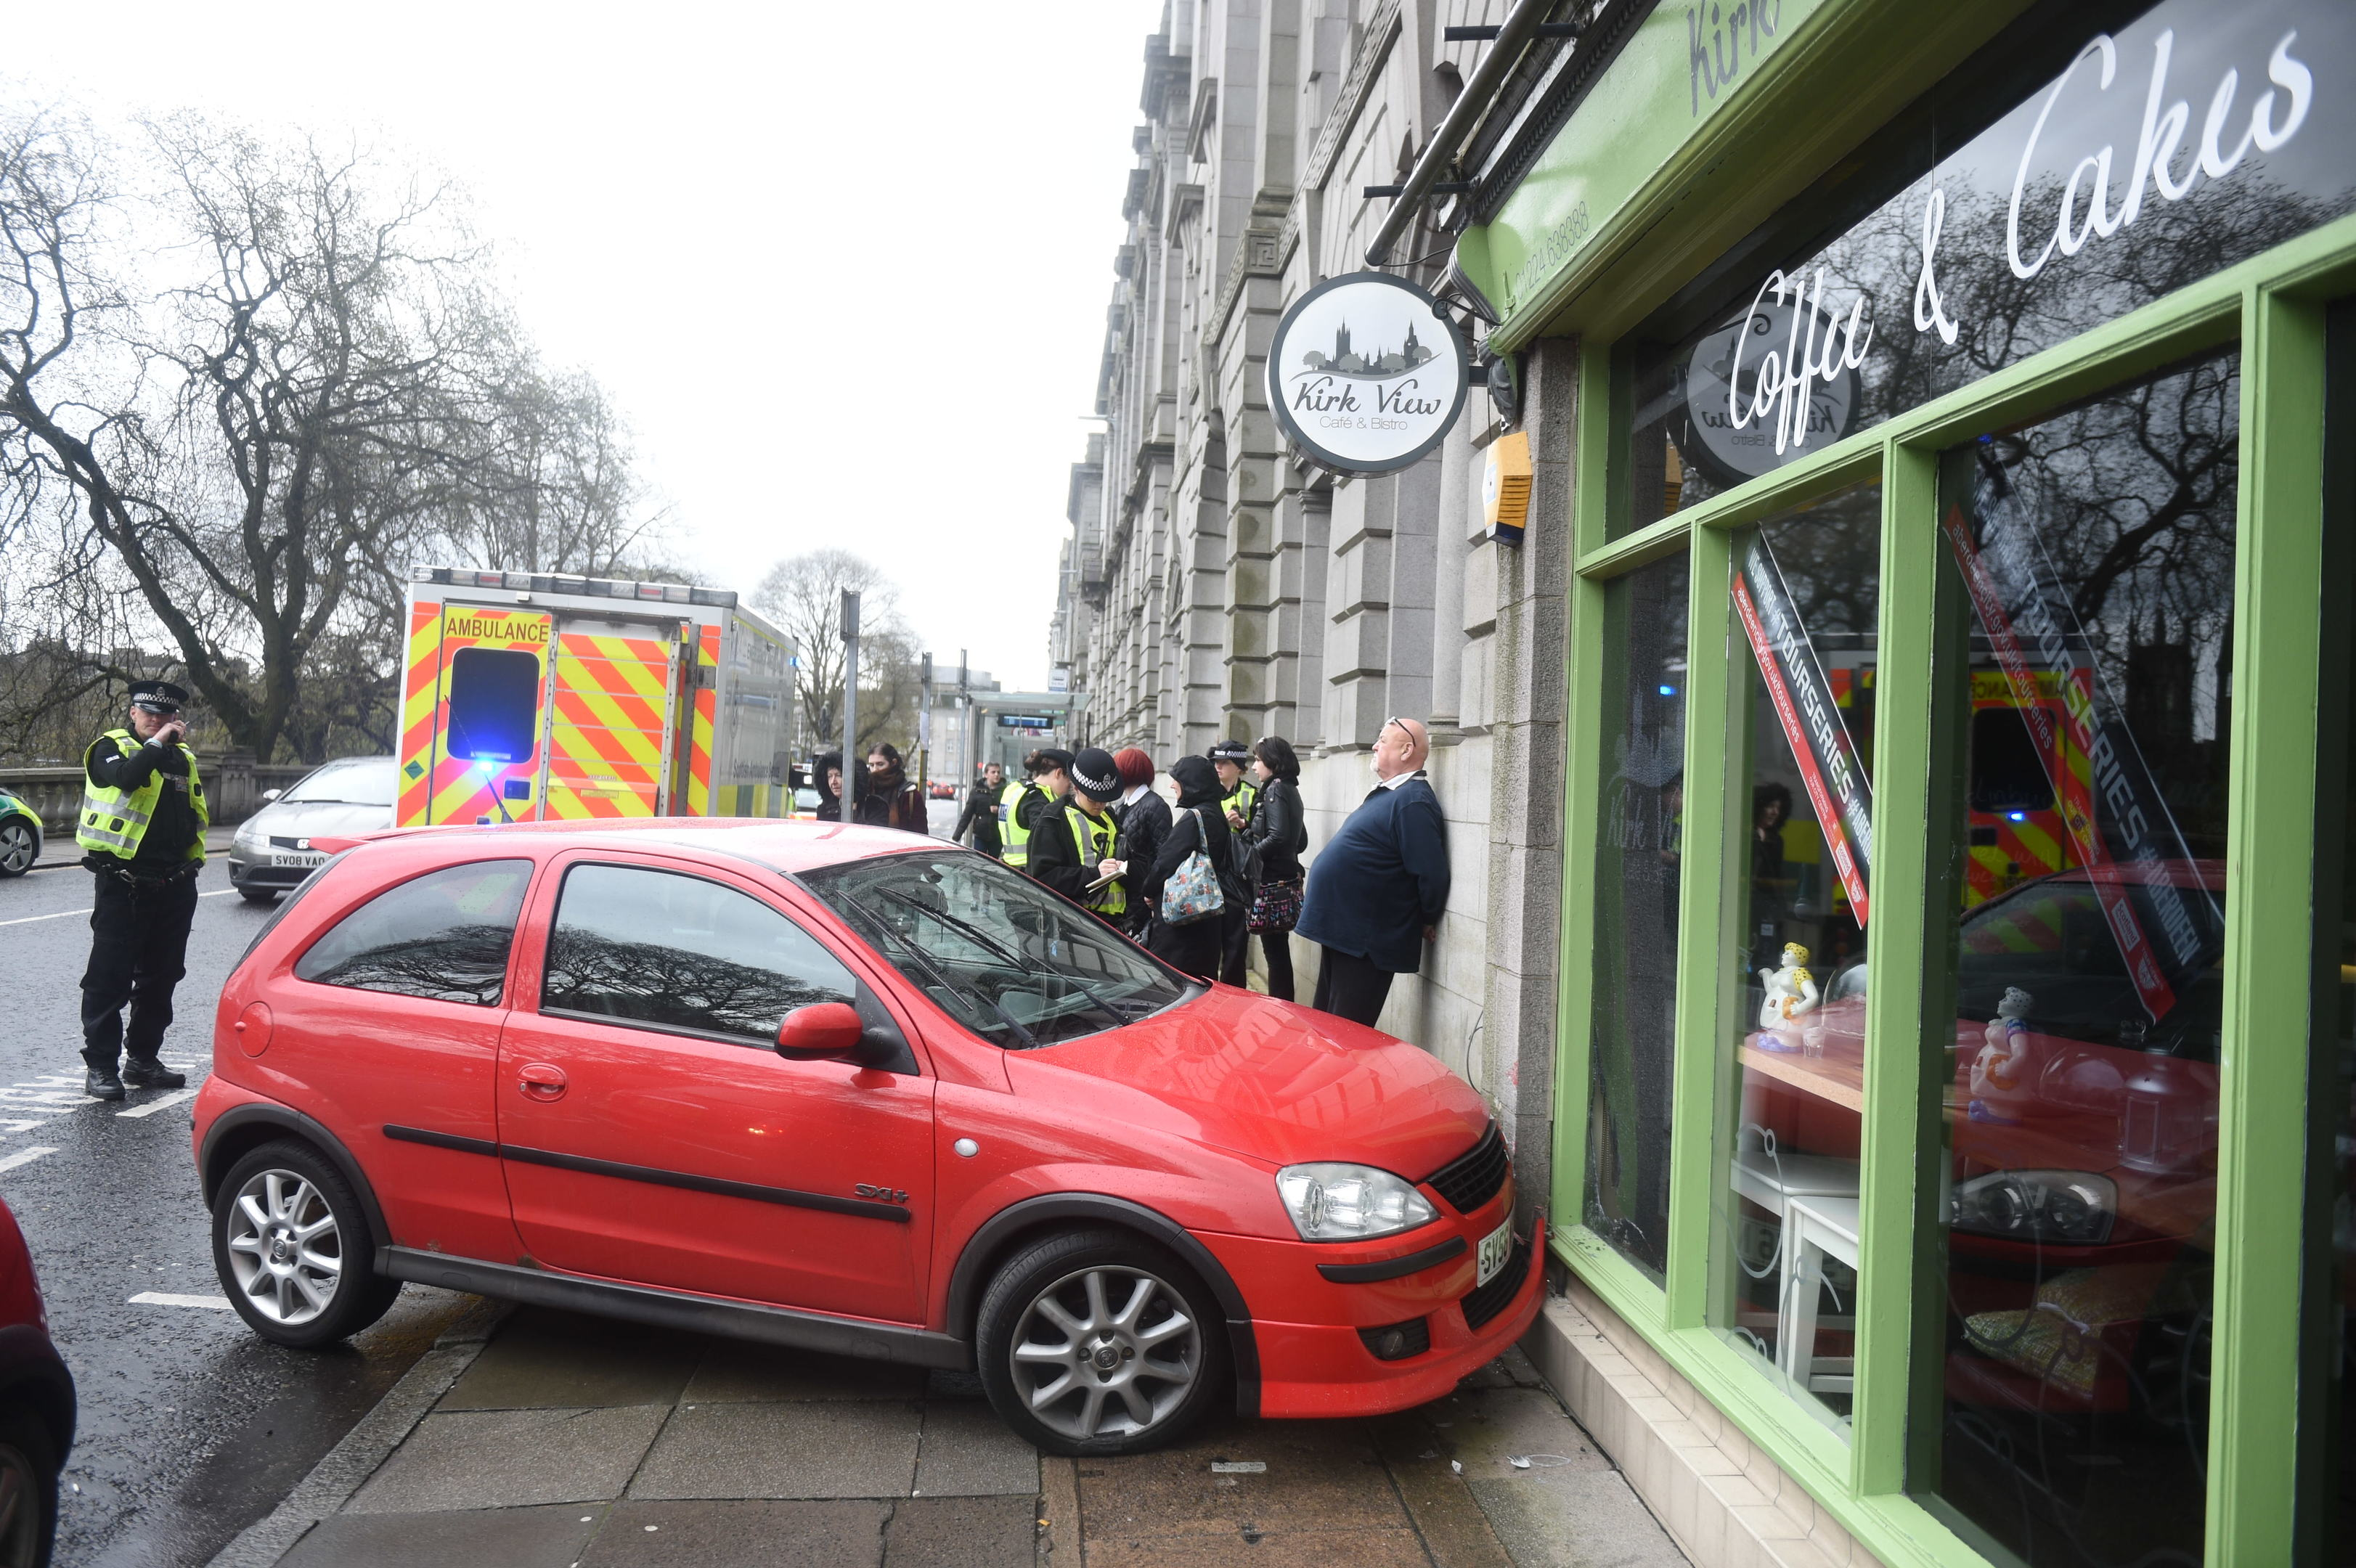 A red Vauxhall Corsa veered onto the footpath at Aberdeen's Union Terrace.